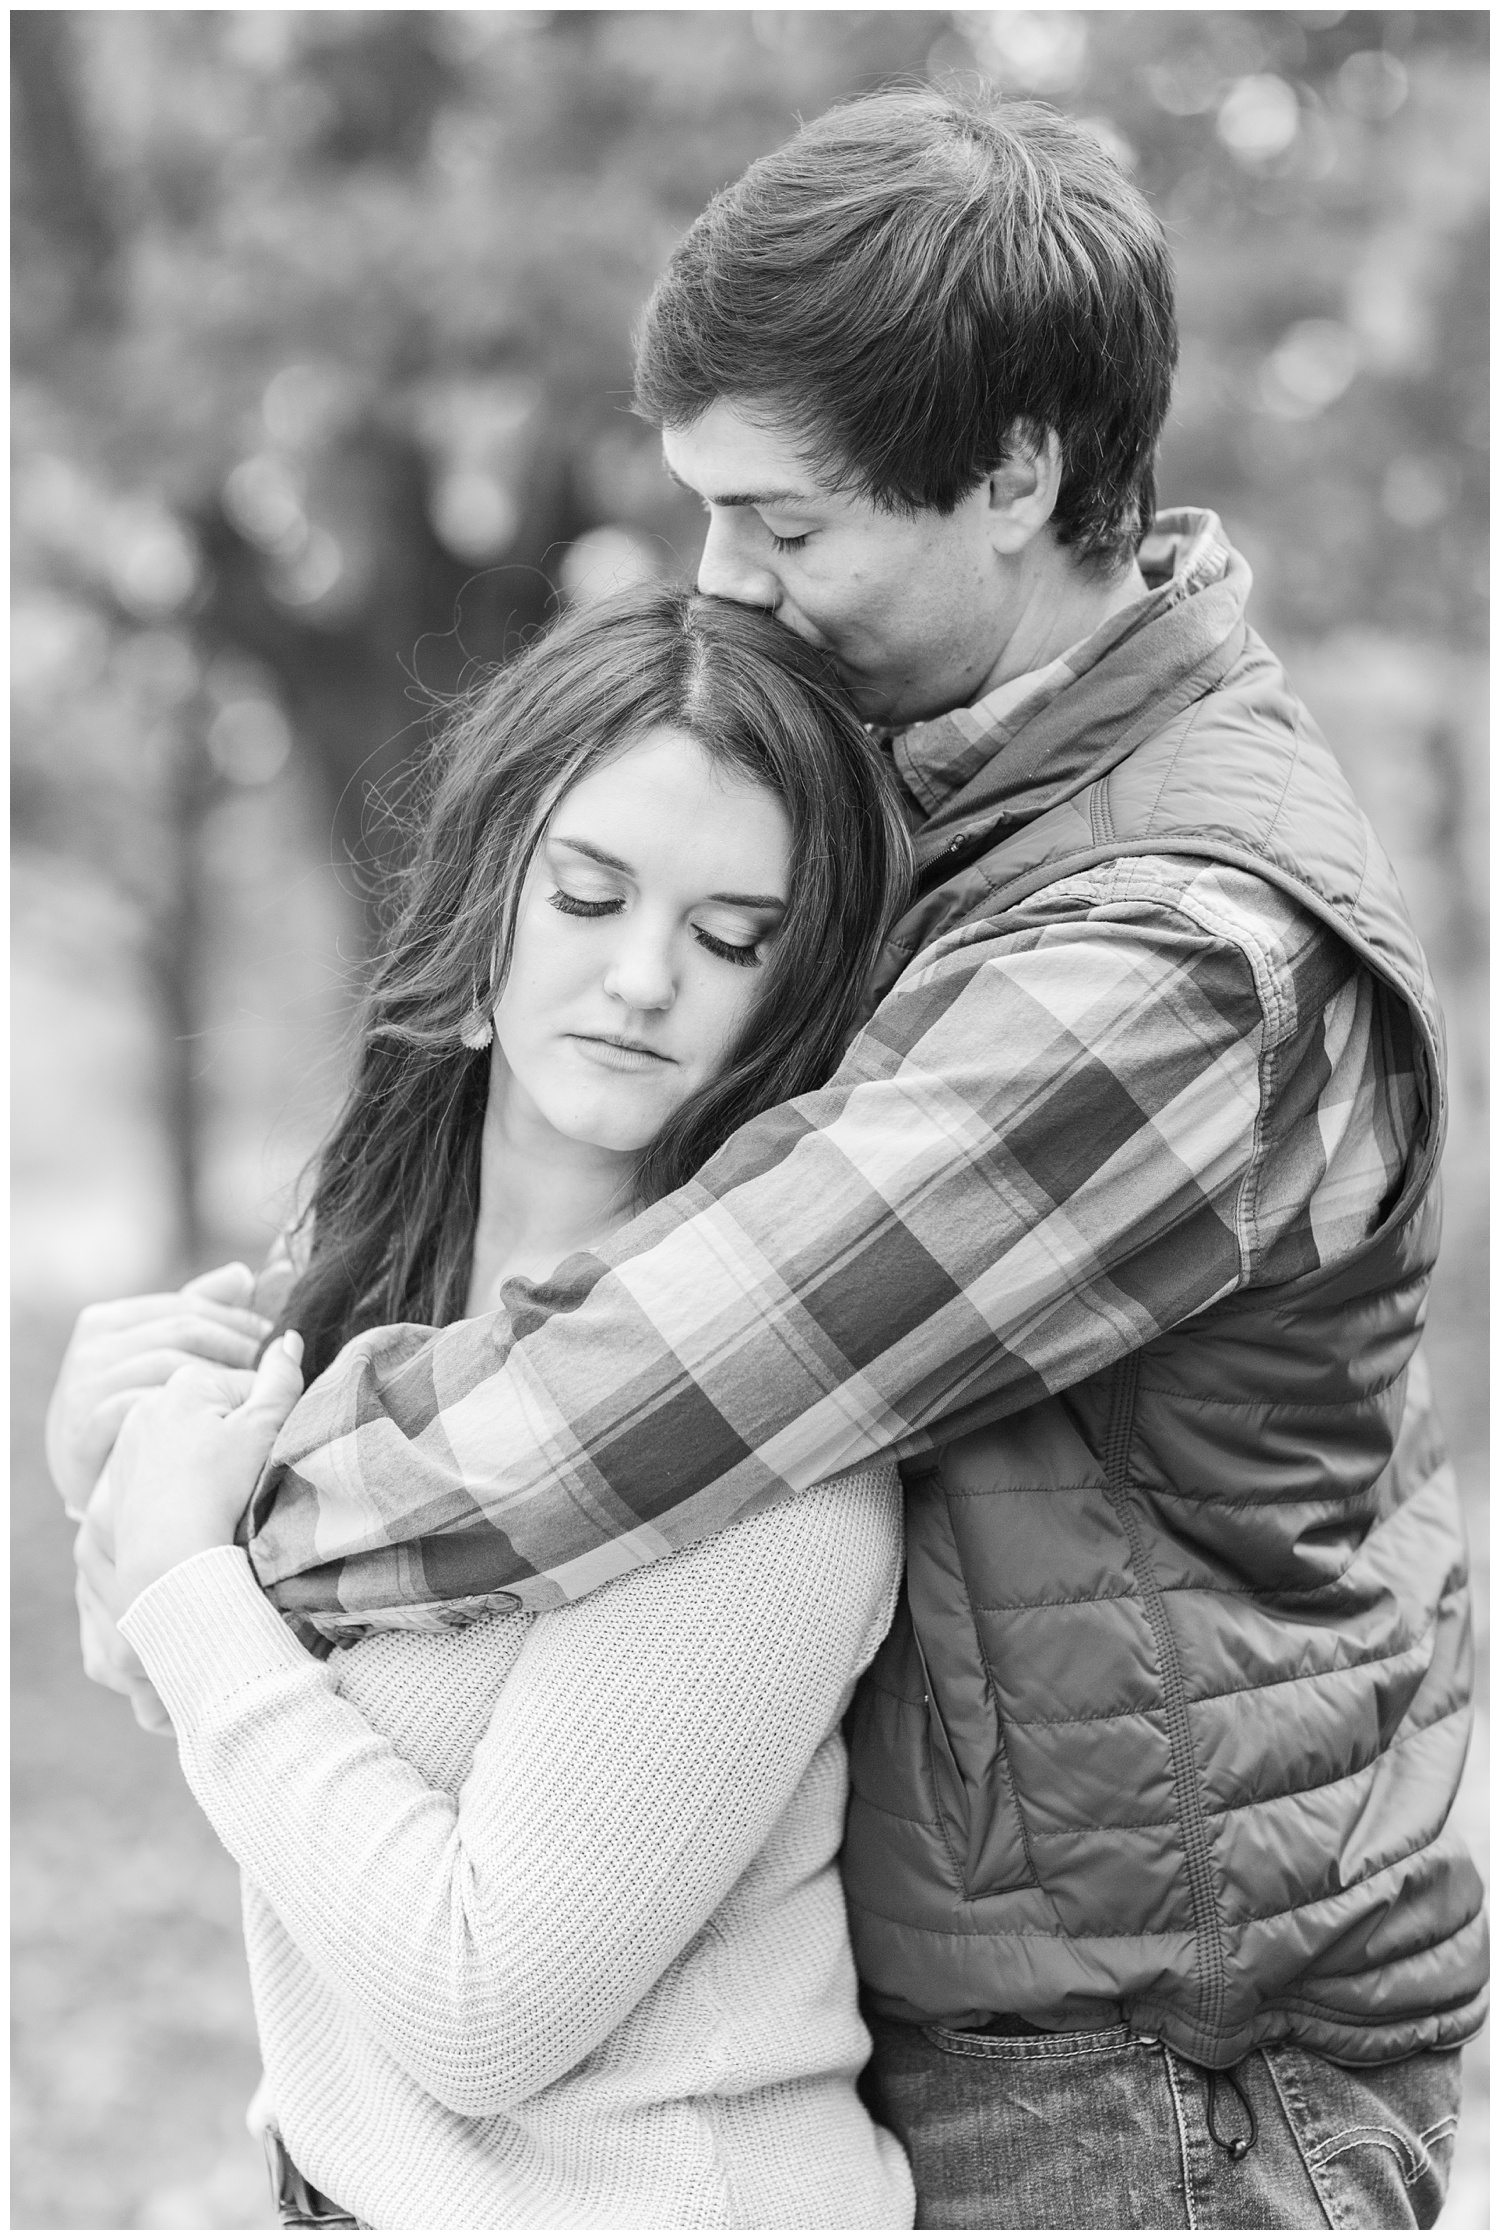 Fall in Iowa, Brady embraces Jenna and kisses her head in the middle of an autumn path at Lost Island Nature Center   CB Studio